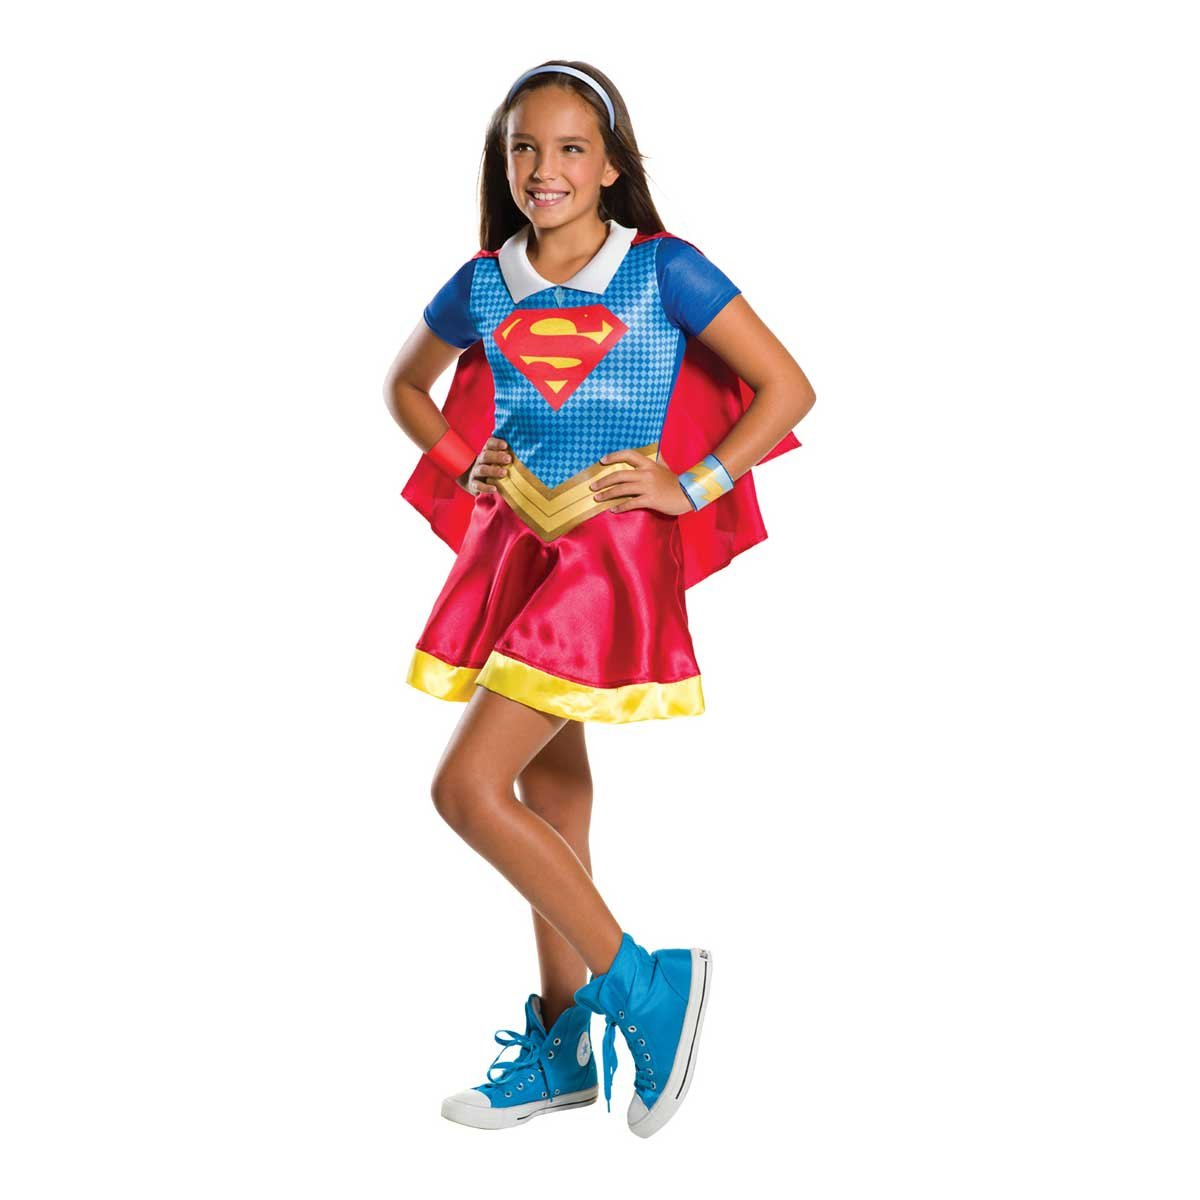 b1487eb887b Rubie's Official Girl's DC Super Hero Supergirl Costume - Small